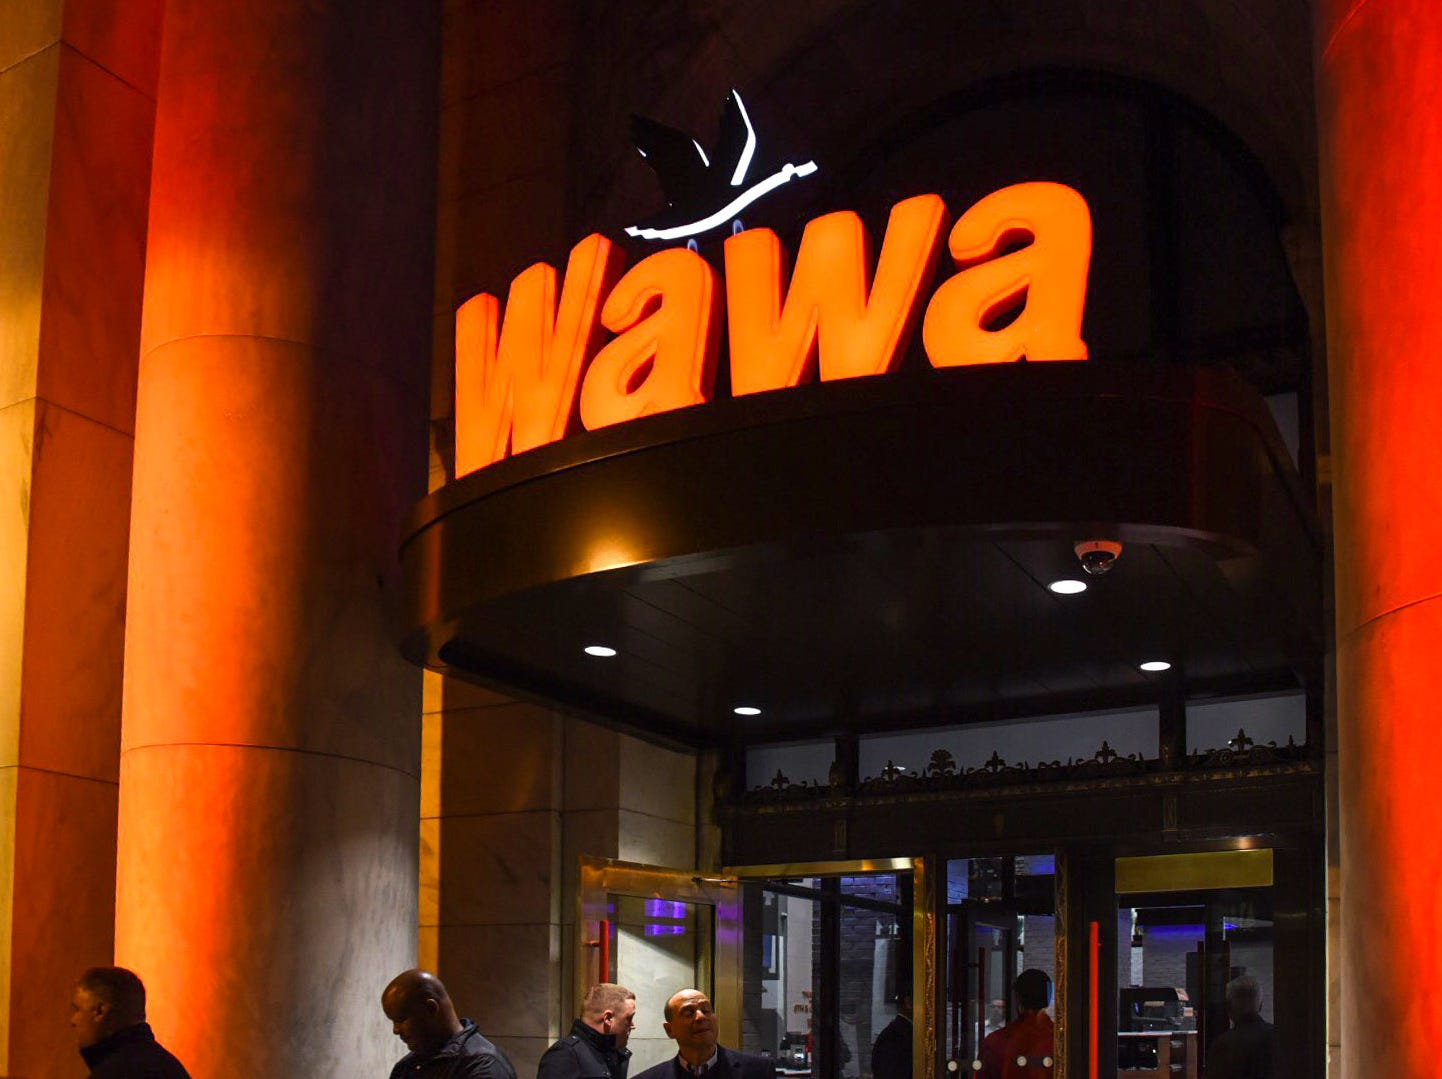 Doors at the Wawa open to the public at 8 a.m. on Friday, Dec. 14, with special giveaways for the first 200 customers. There's also free coffee all weekend.